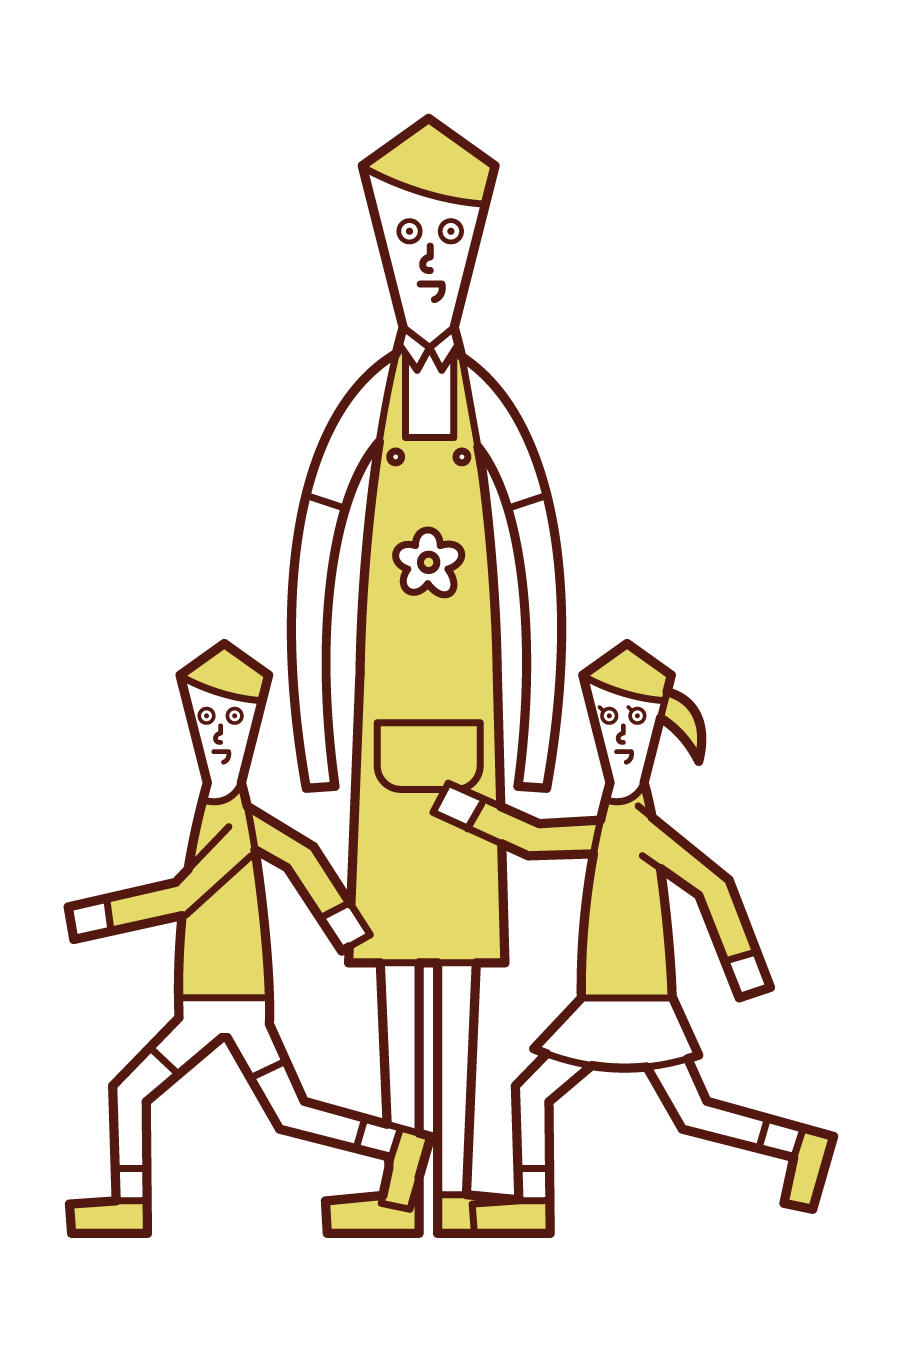 Illustration of a nursery teacher (man) watching over children